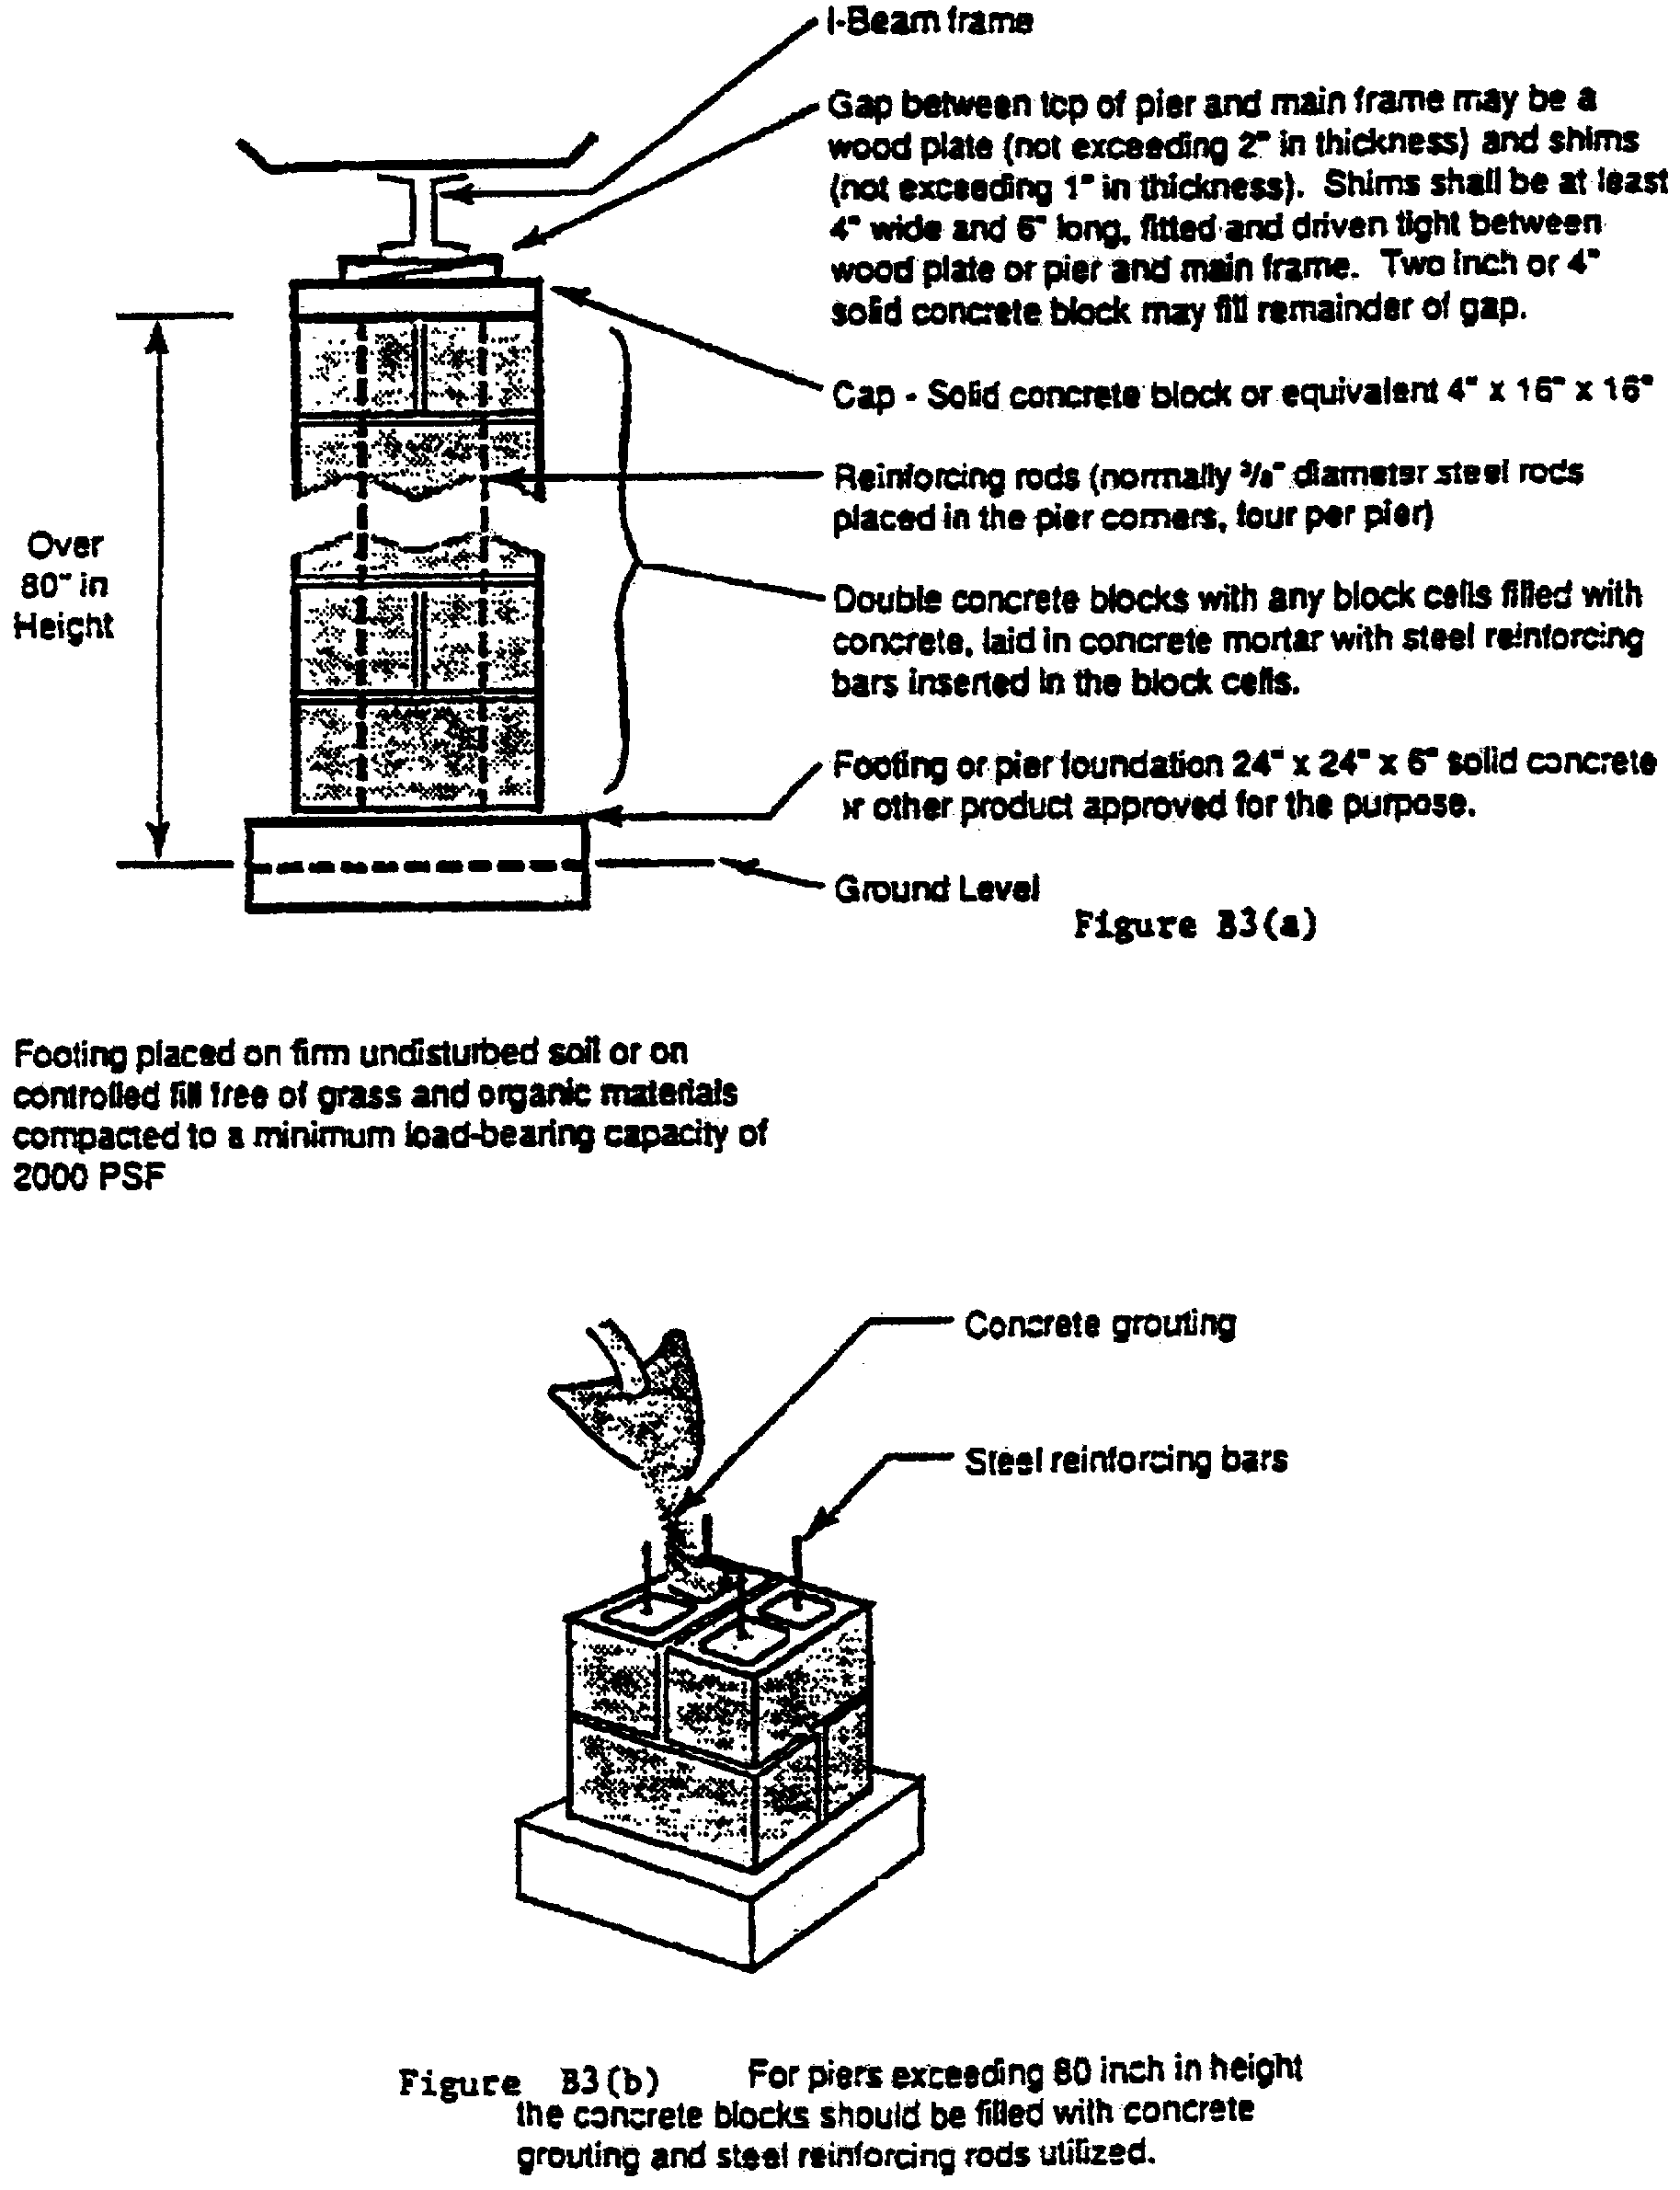 TYPICAL DESIGNS FOR LOAD-BEARING SUPPORTS FOR MANUFACTURED HOMES - Figure 2